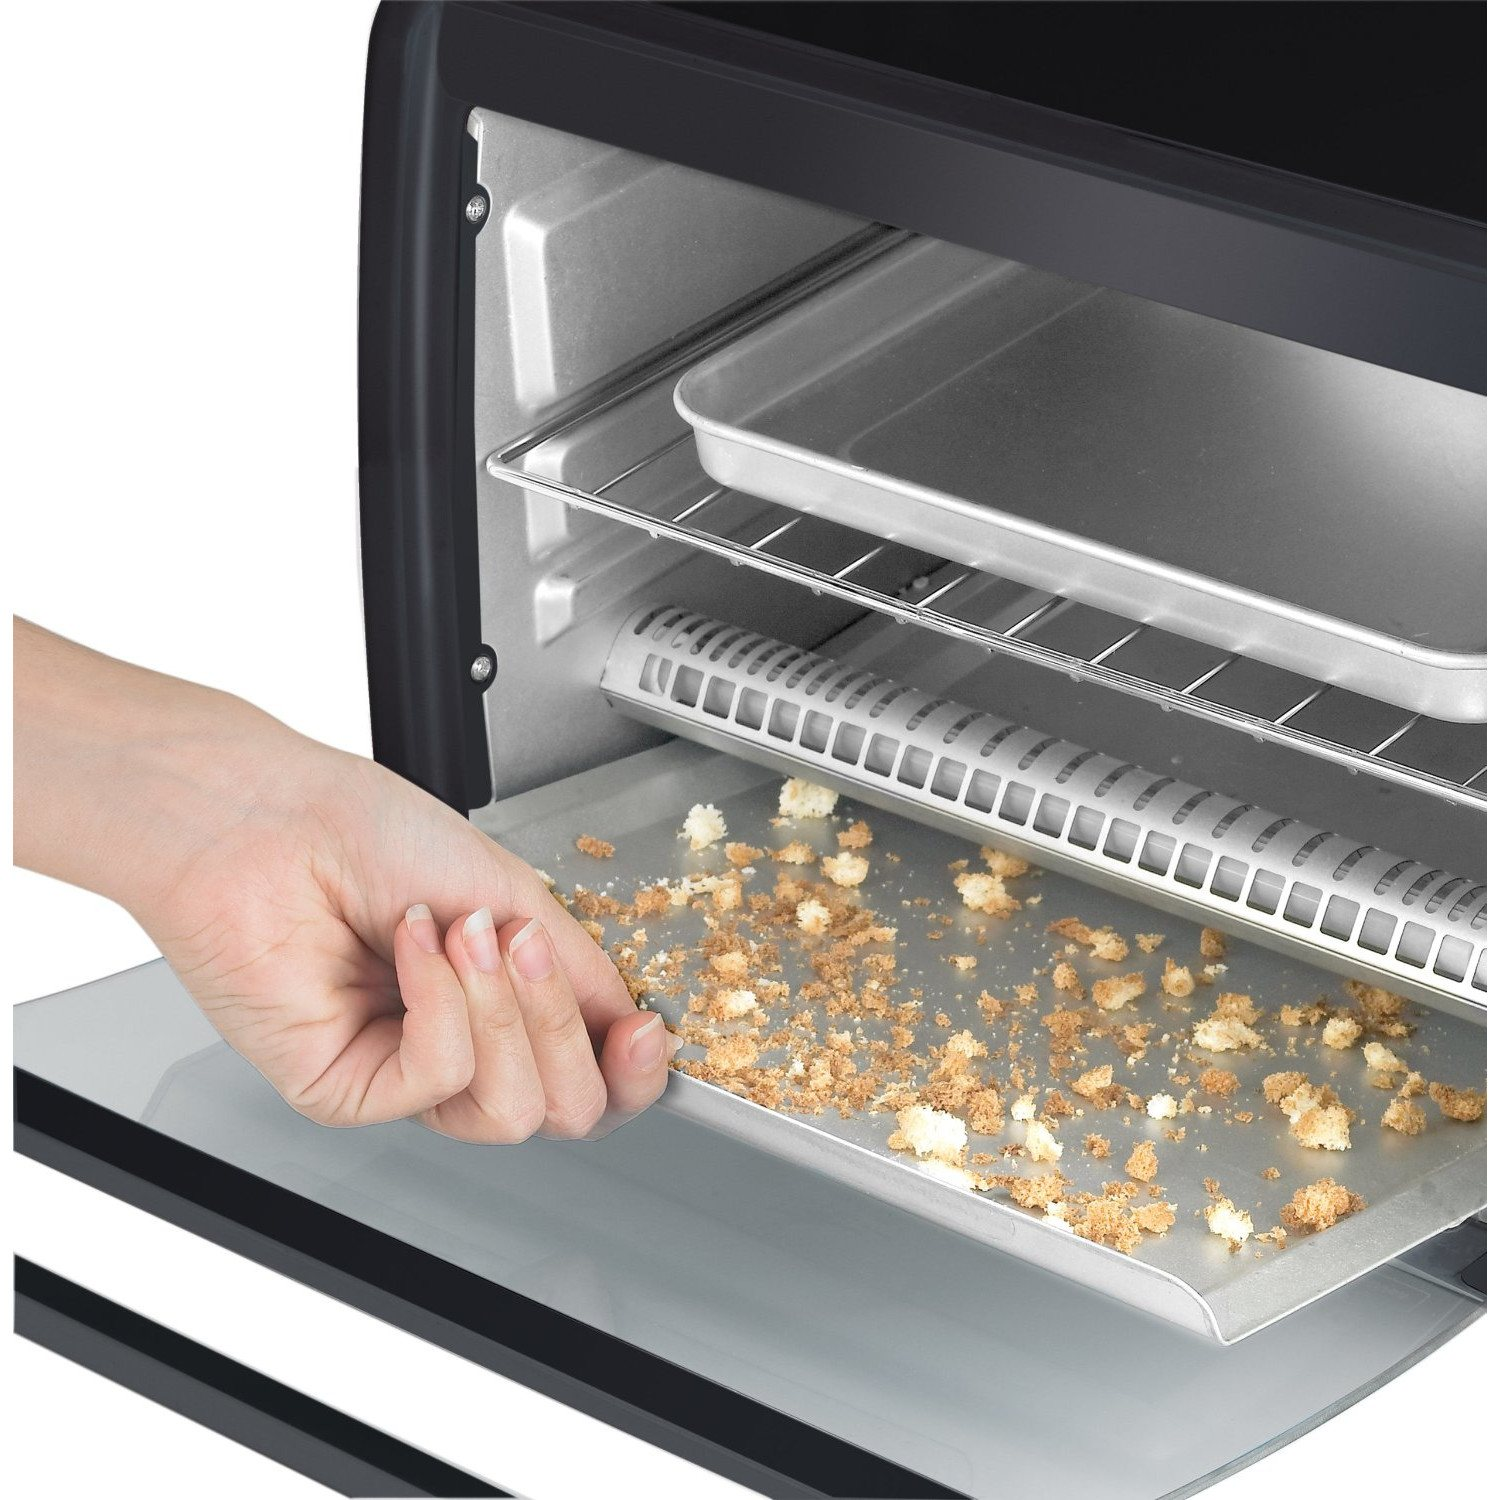 The Best Countertop Convection Oven All The Guide You Need To Know